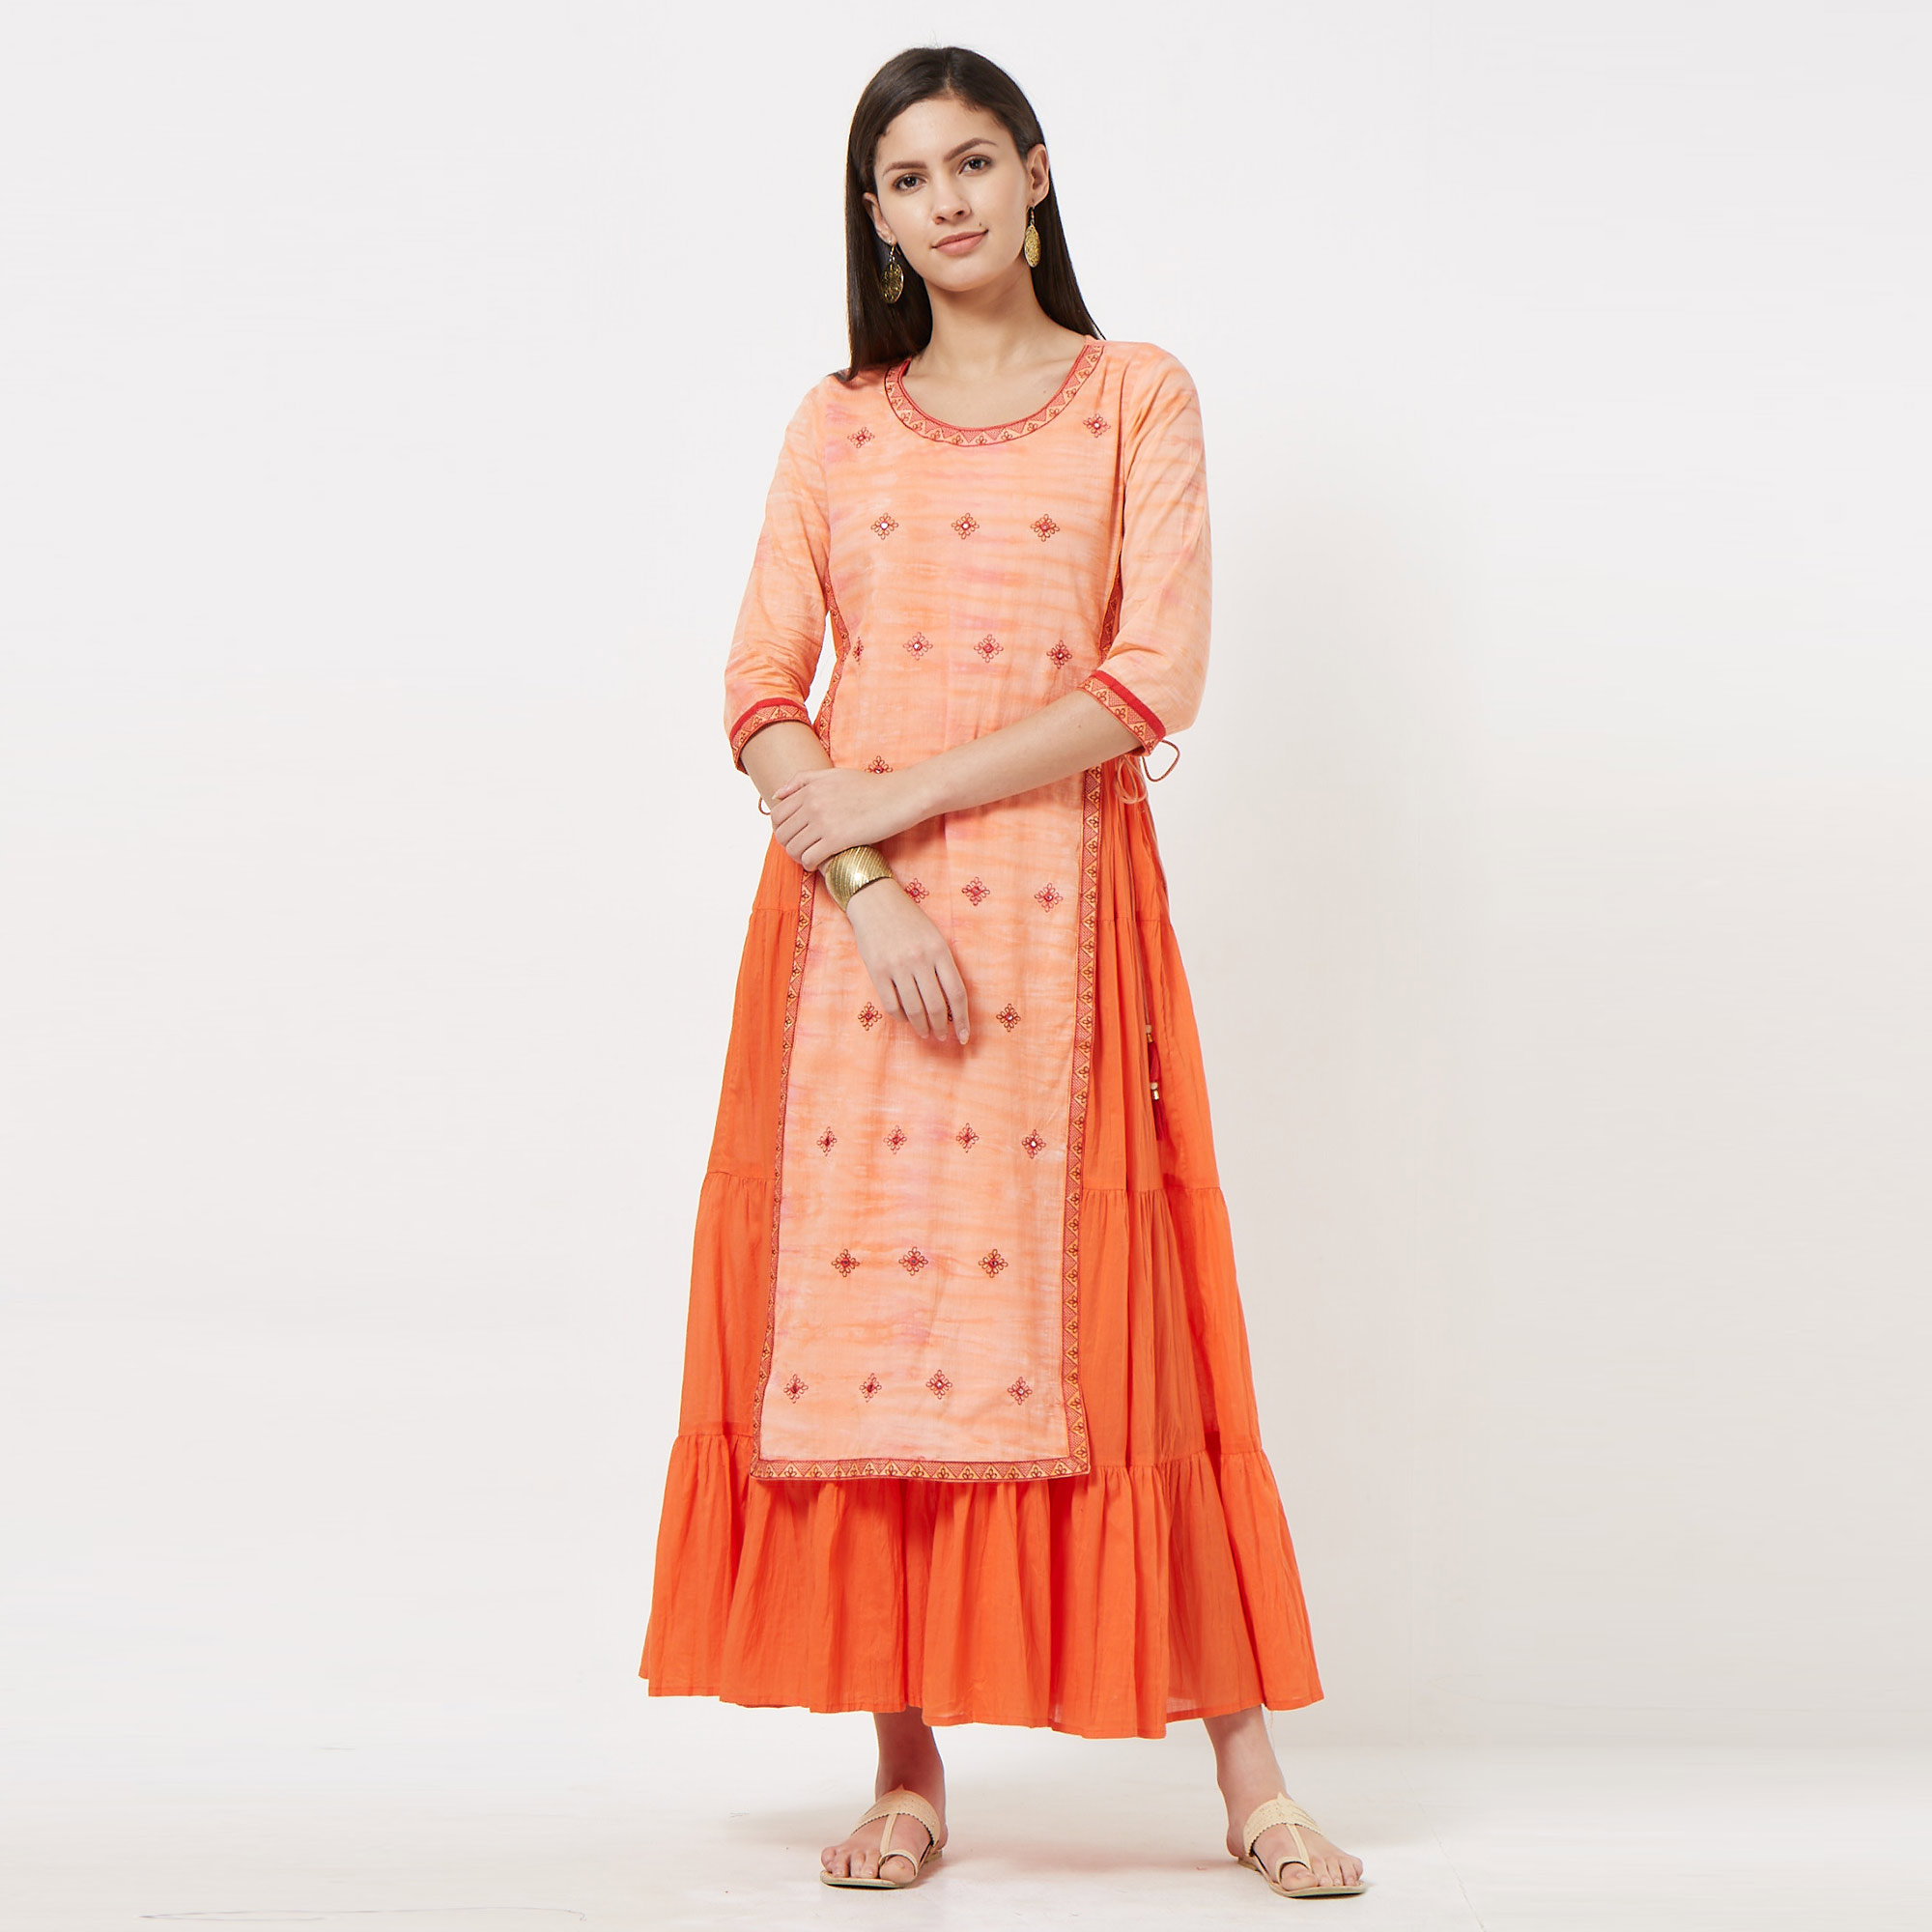 Mesmerising Peach Colored Partywear Embroidered Long Kurti